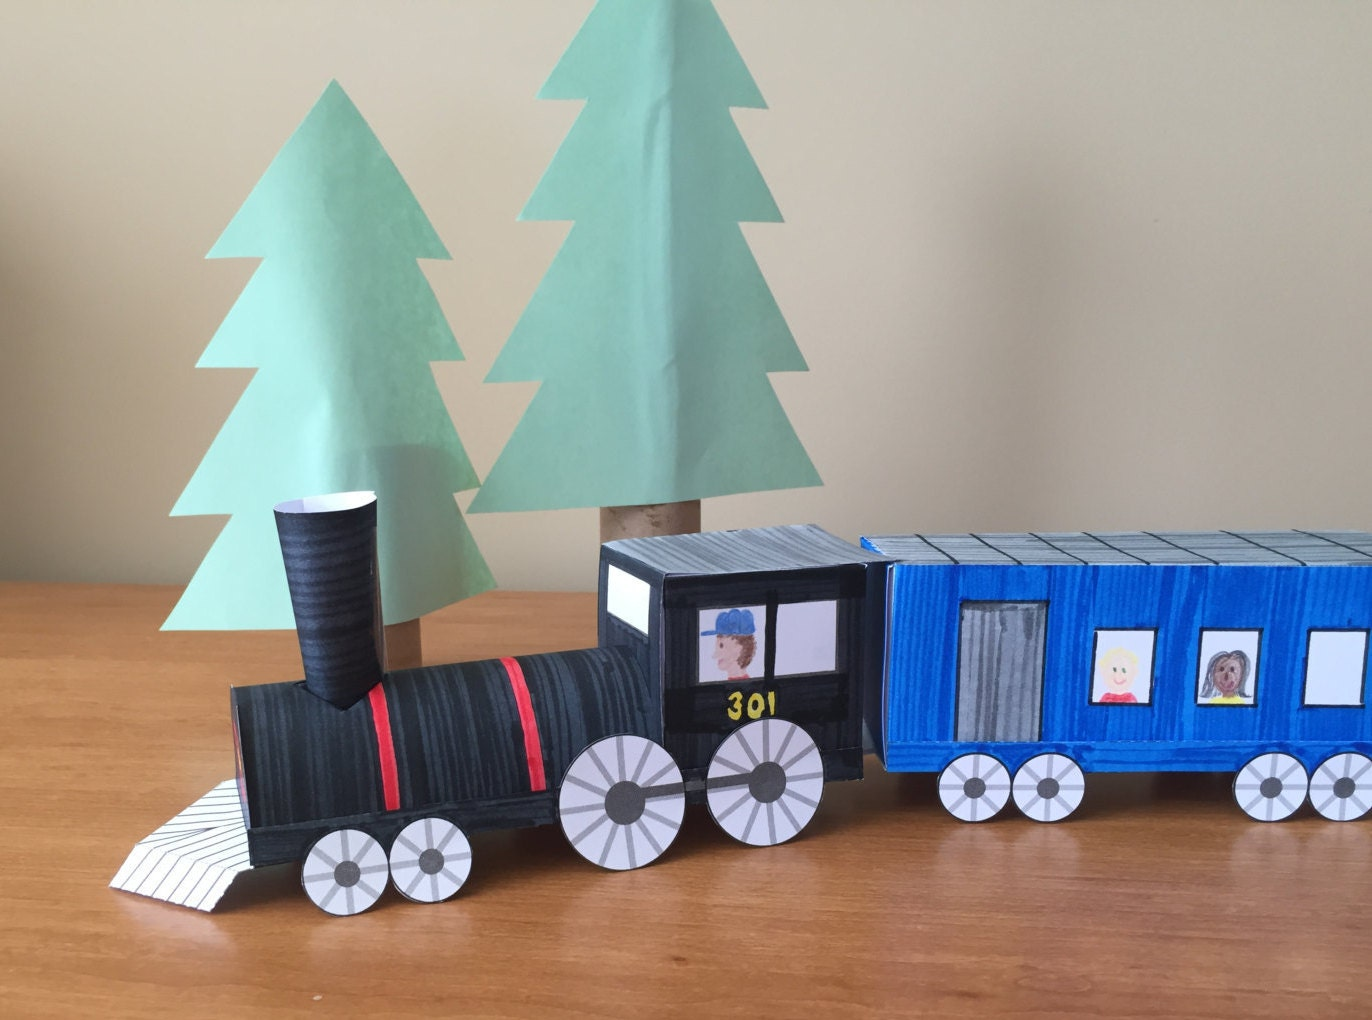 3d Paper Train Instant Download Template From Fanfaron On